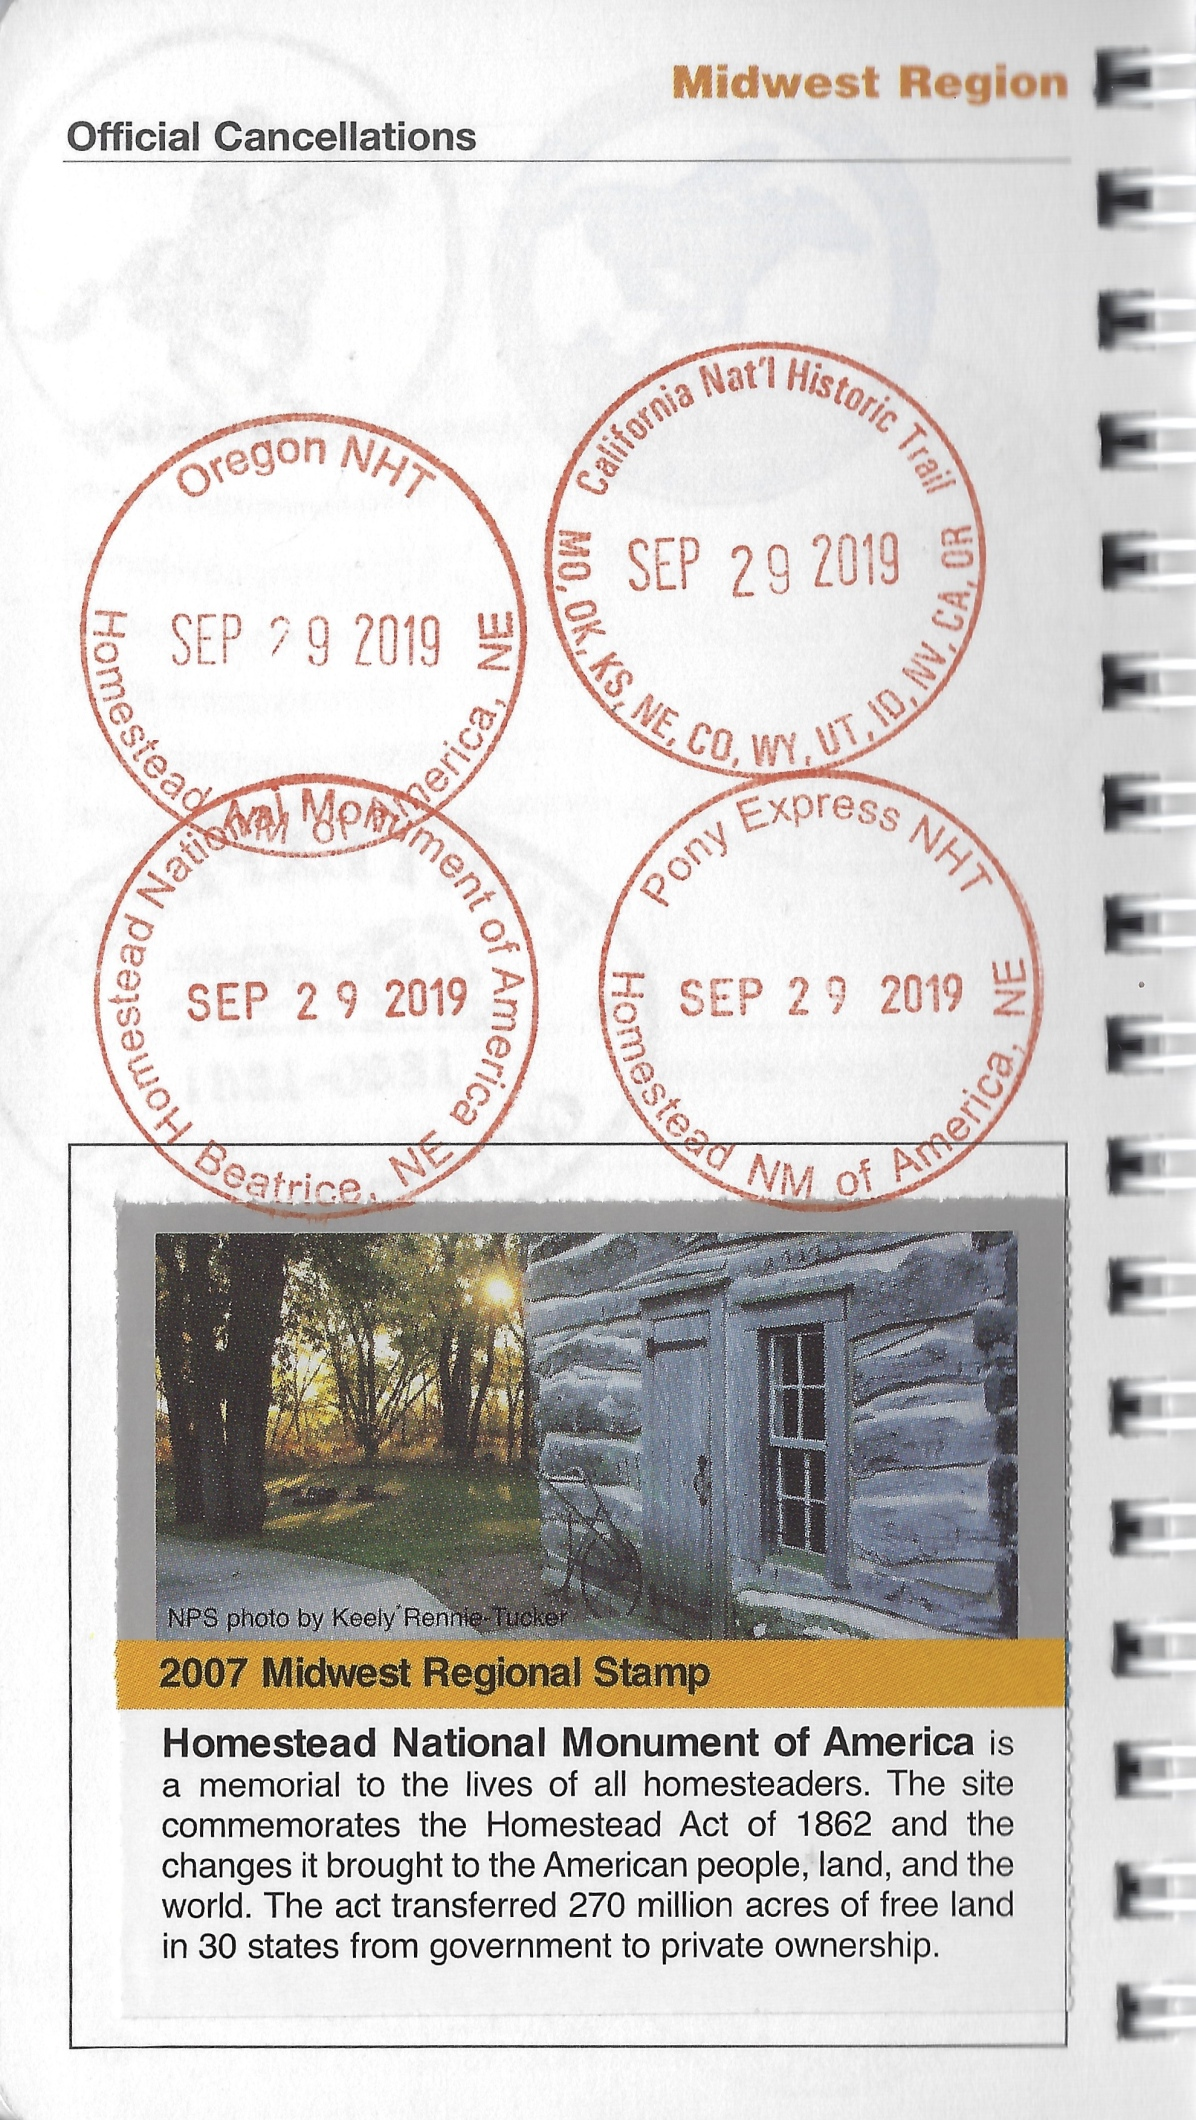 cancellation stamp for Homestead National Monument